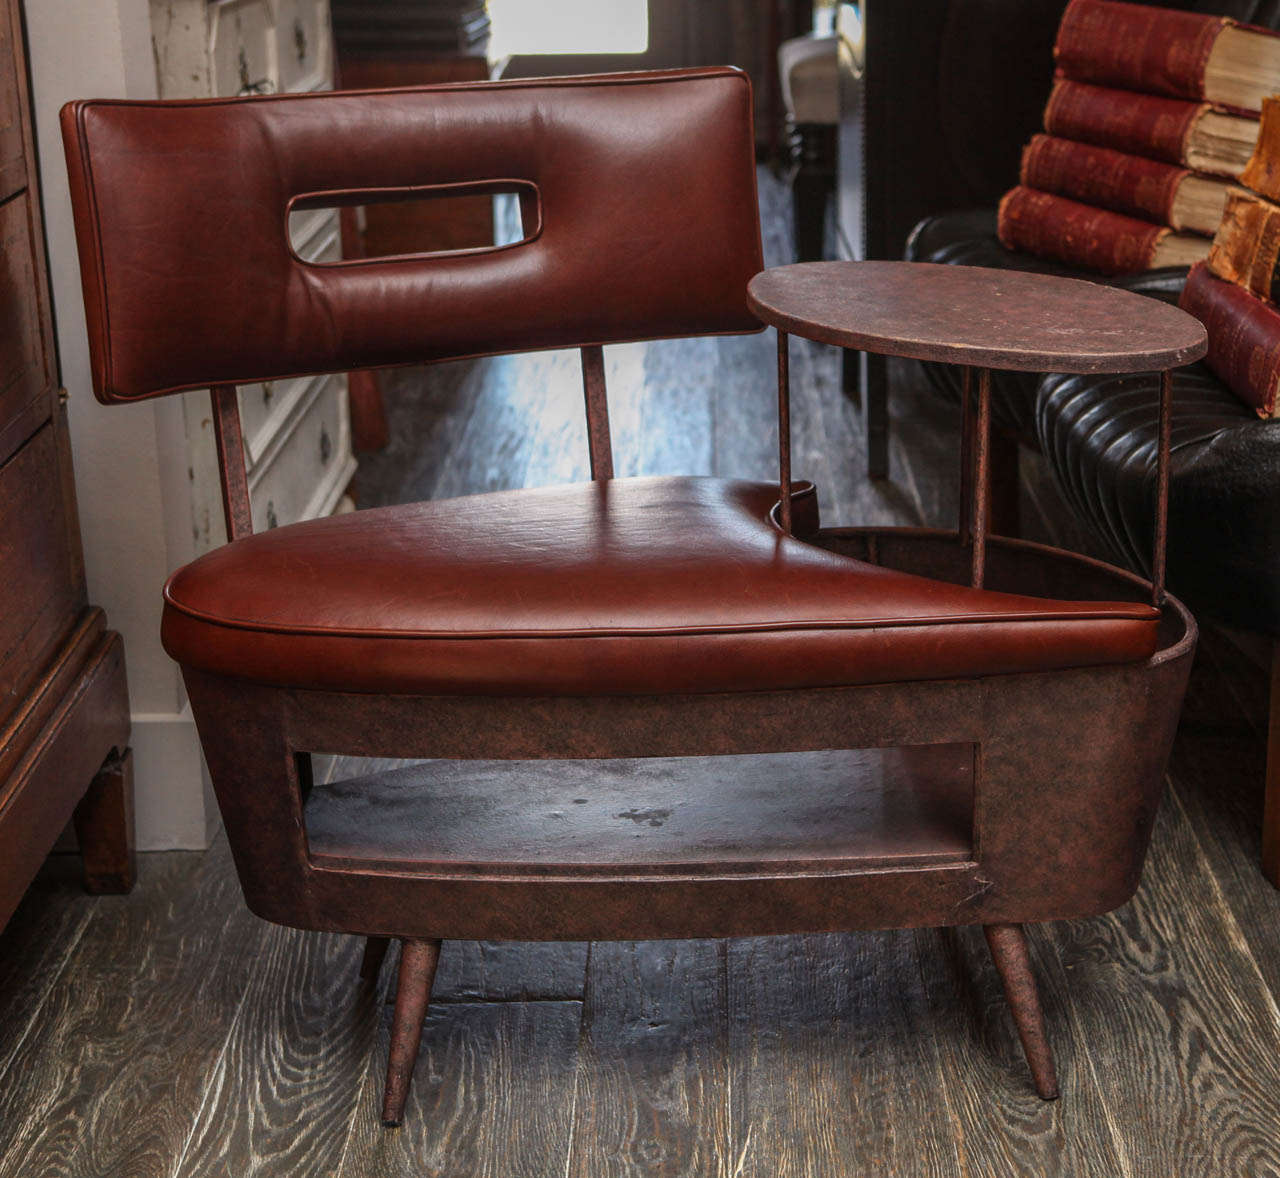 Telephone Chair With Table Combo At 1stdibs